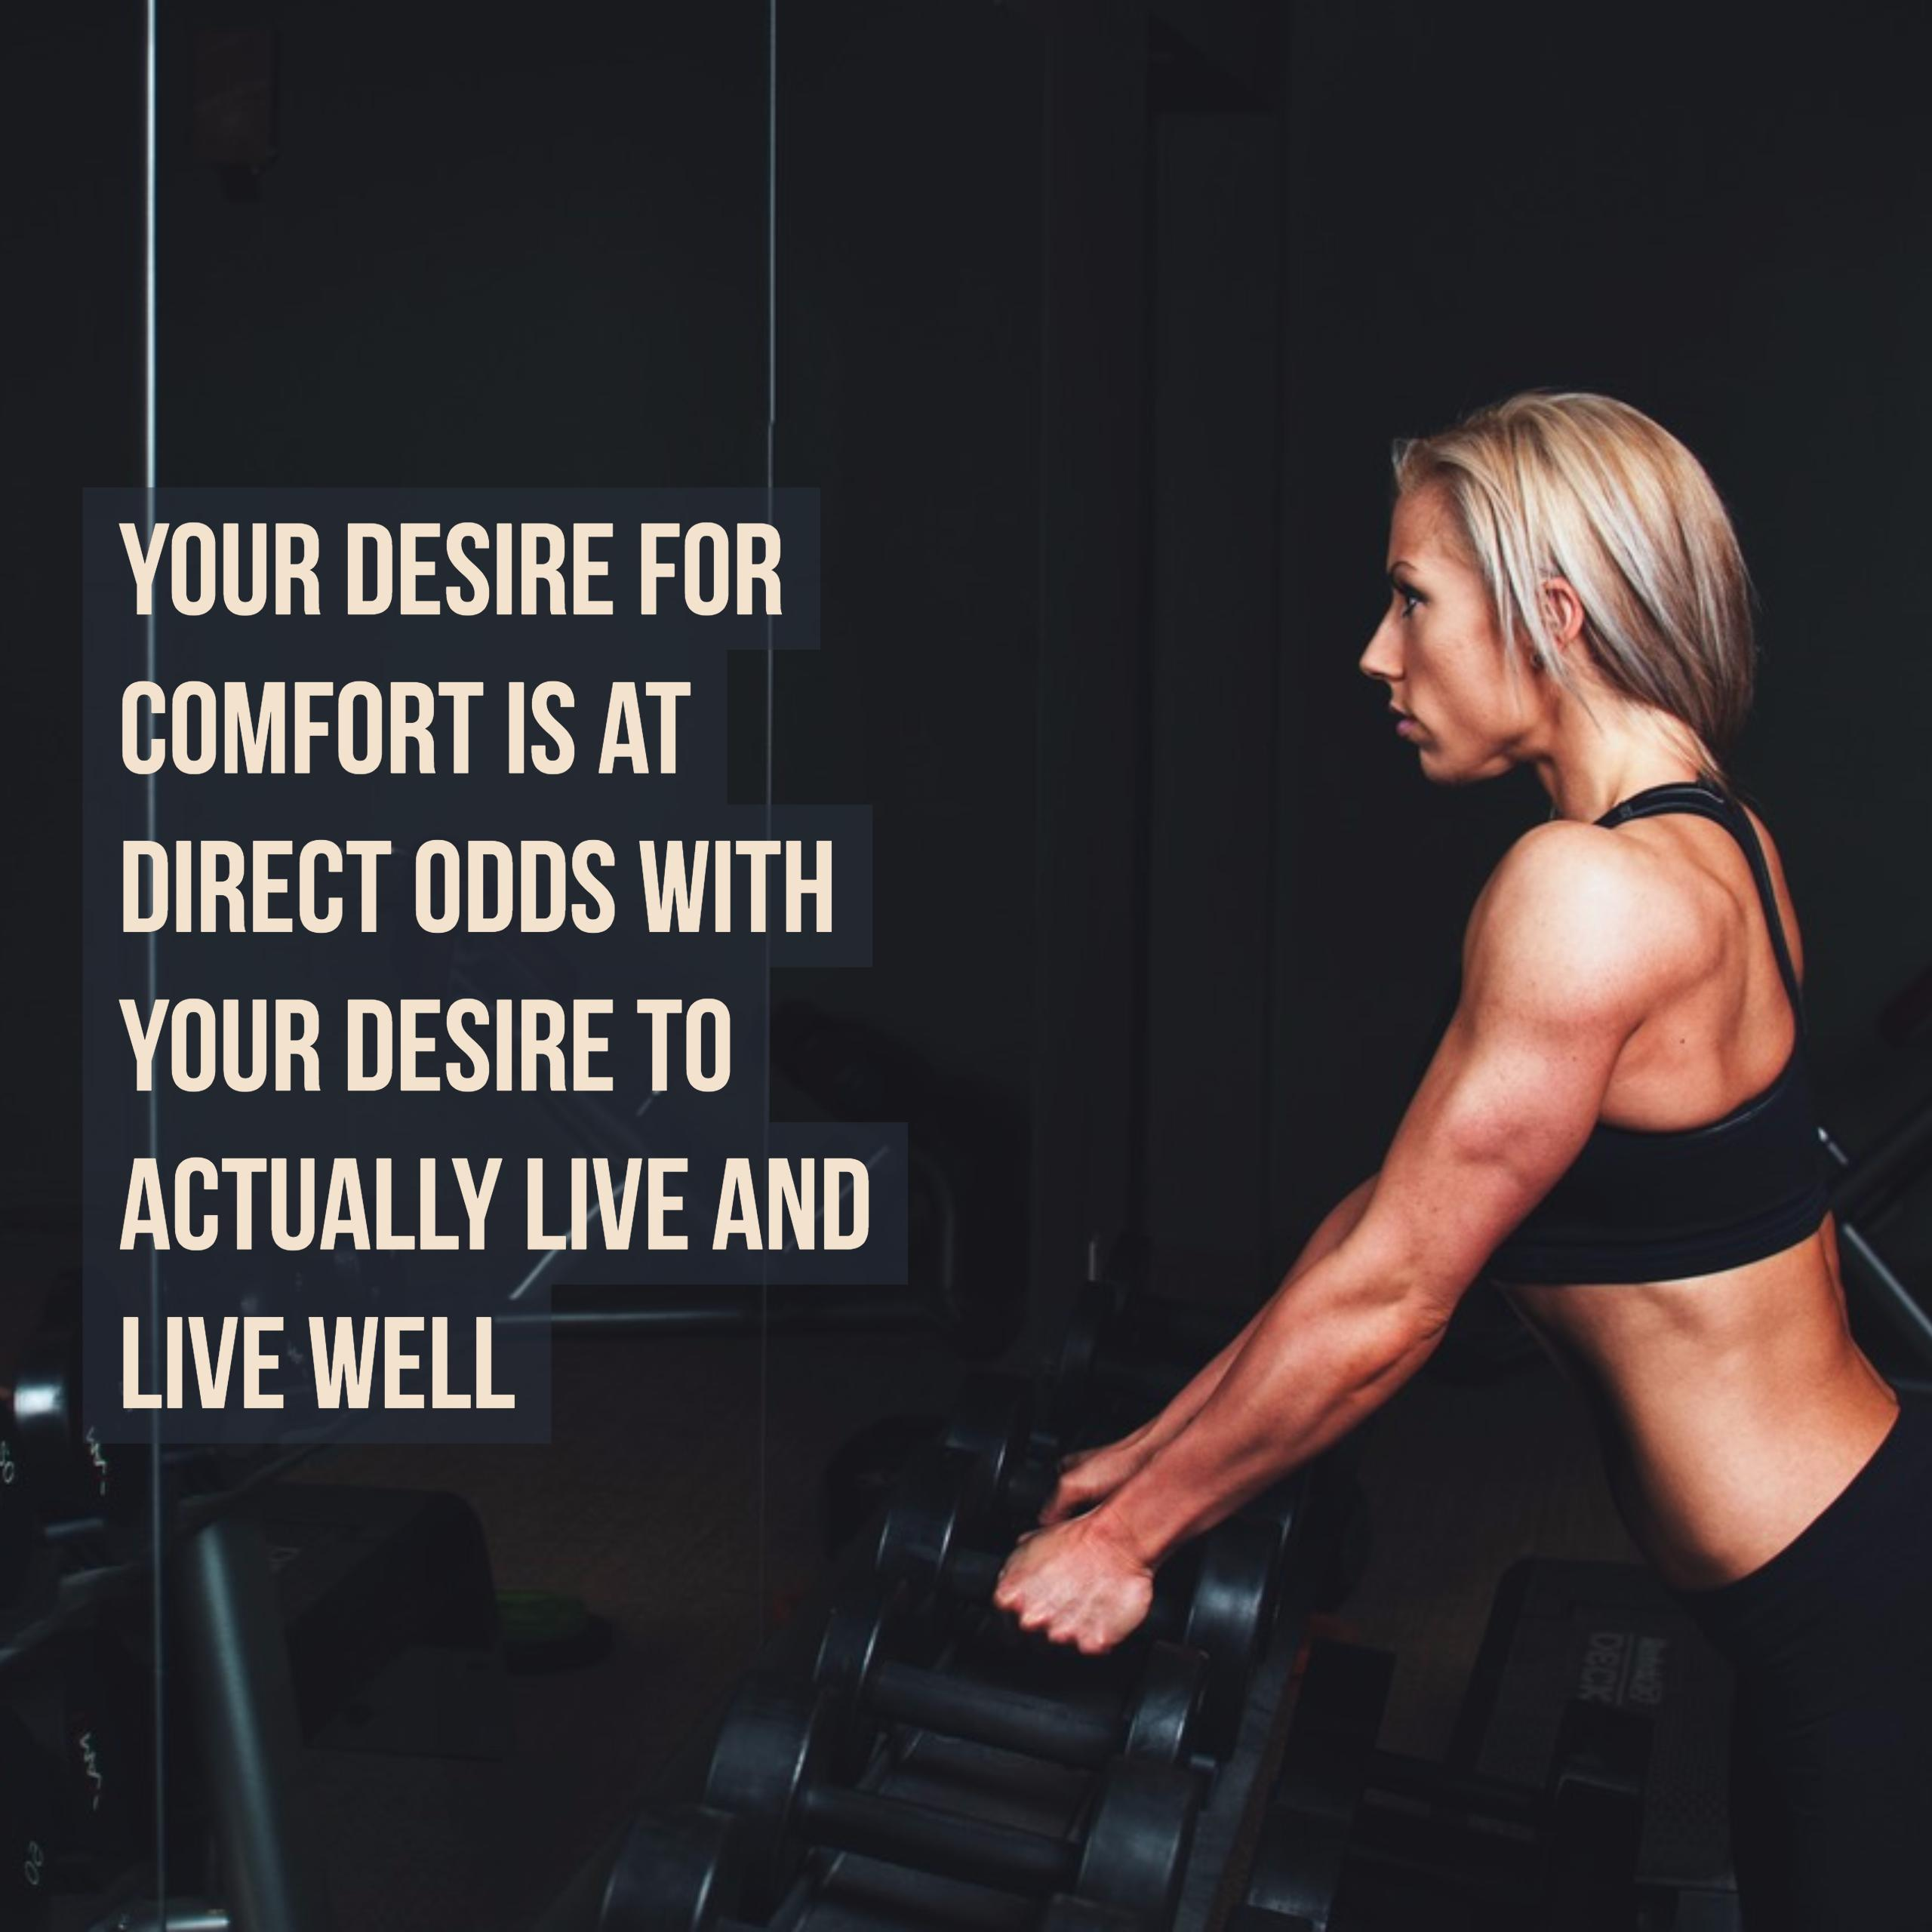 Your desire for comfort is at odds with your desire to live well